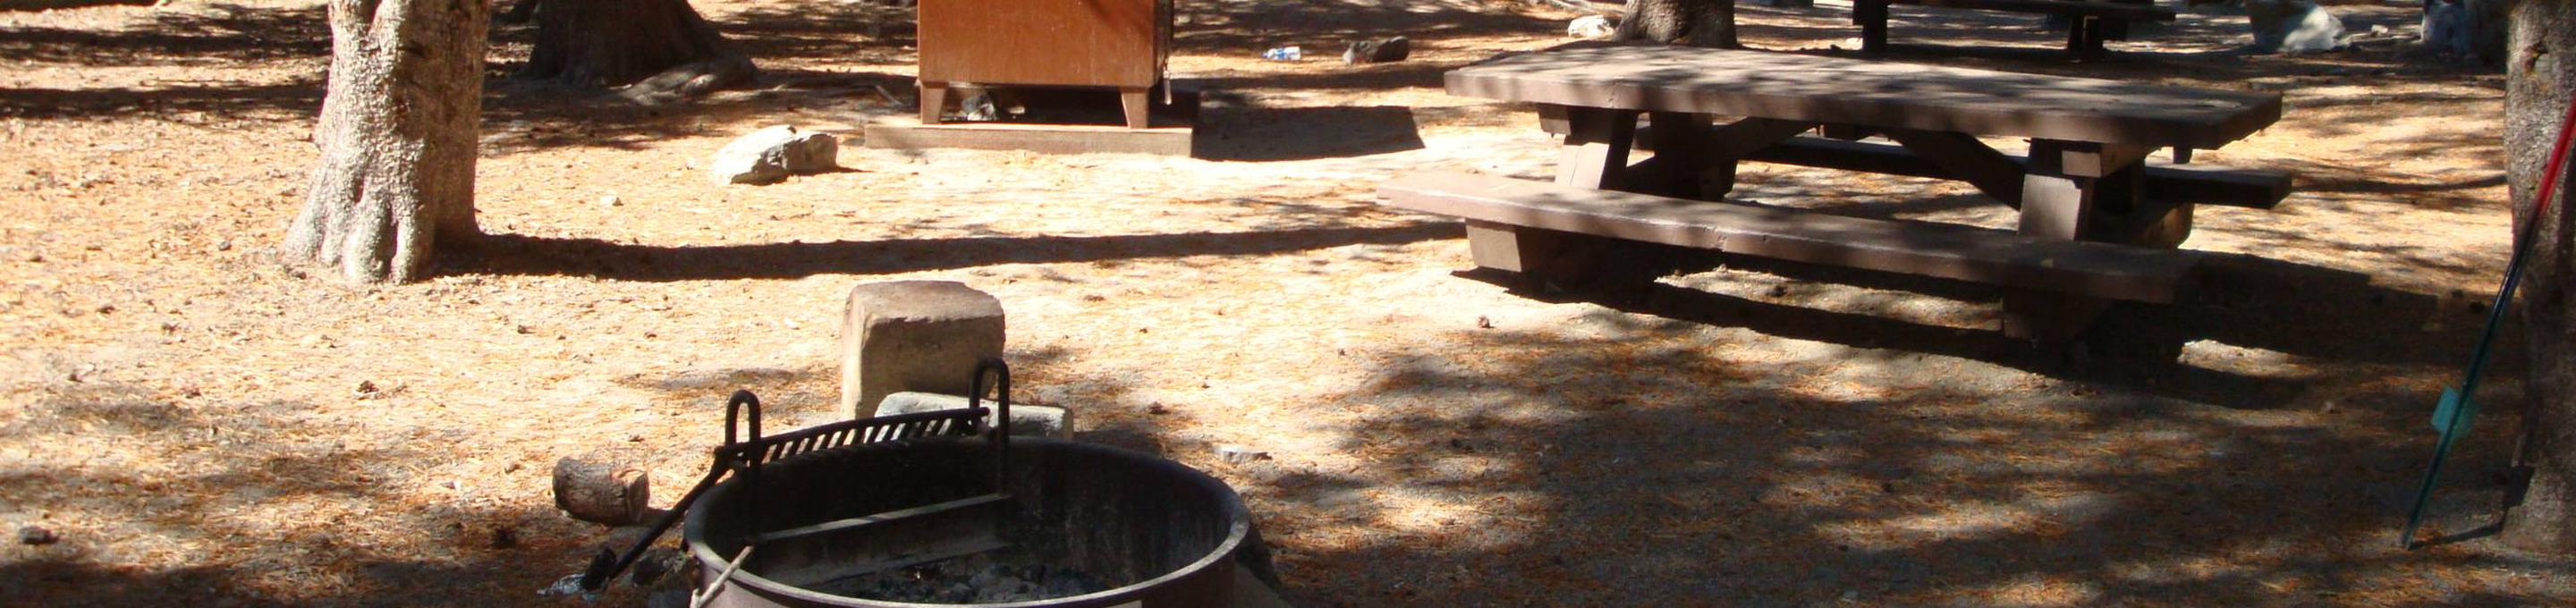 Lake Mary Campground SITE 33